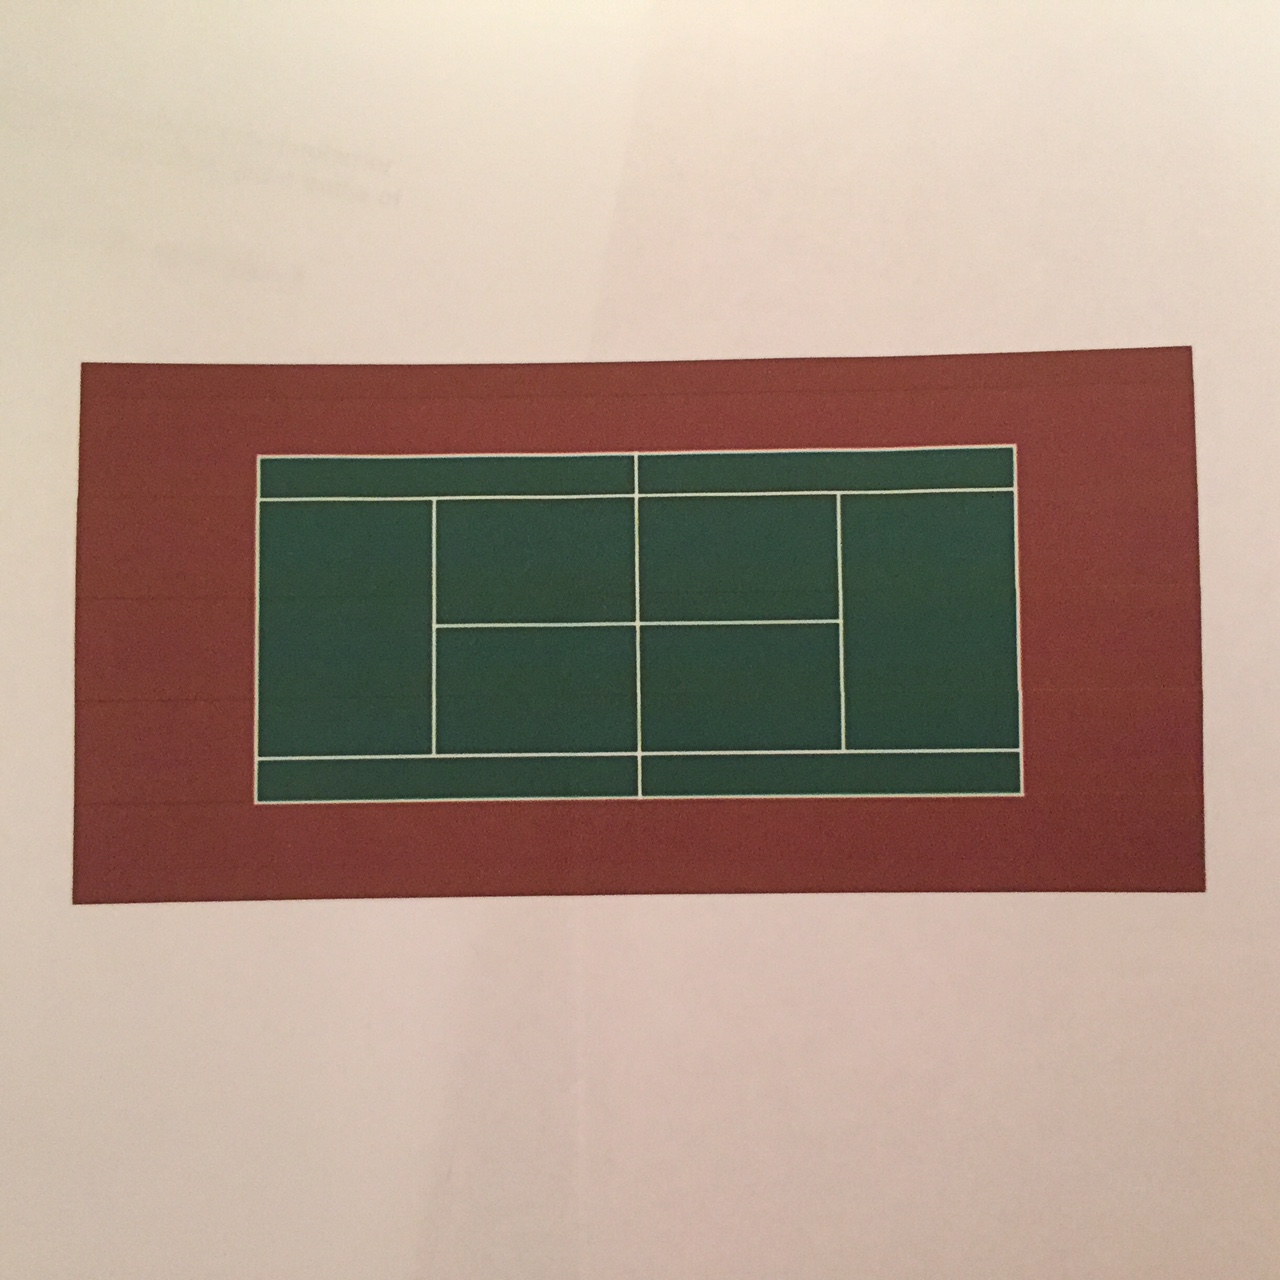 Artwork from the book - Tennis Etiquette – The Line by Stephen Pohlmann - Ourboox.com